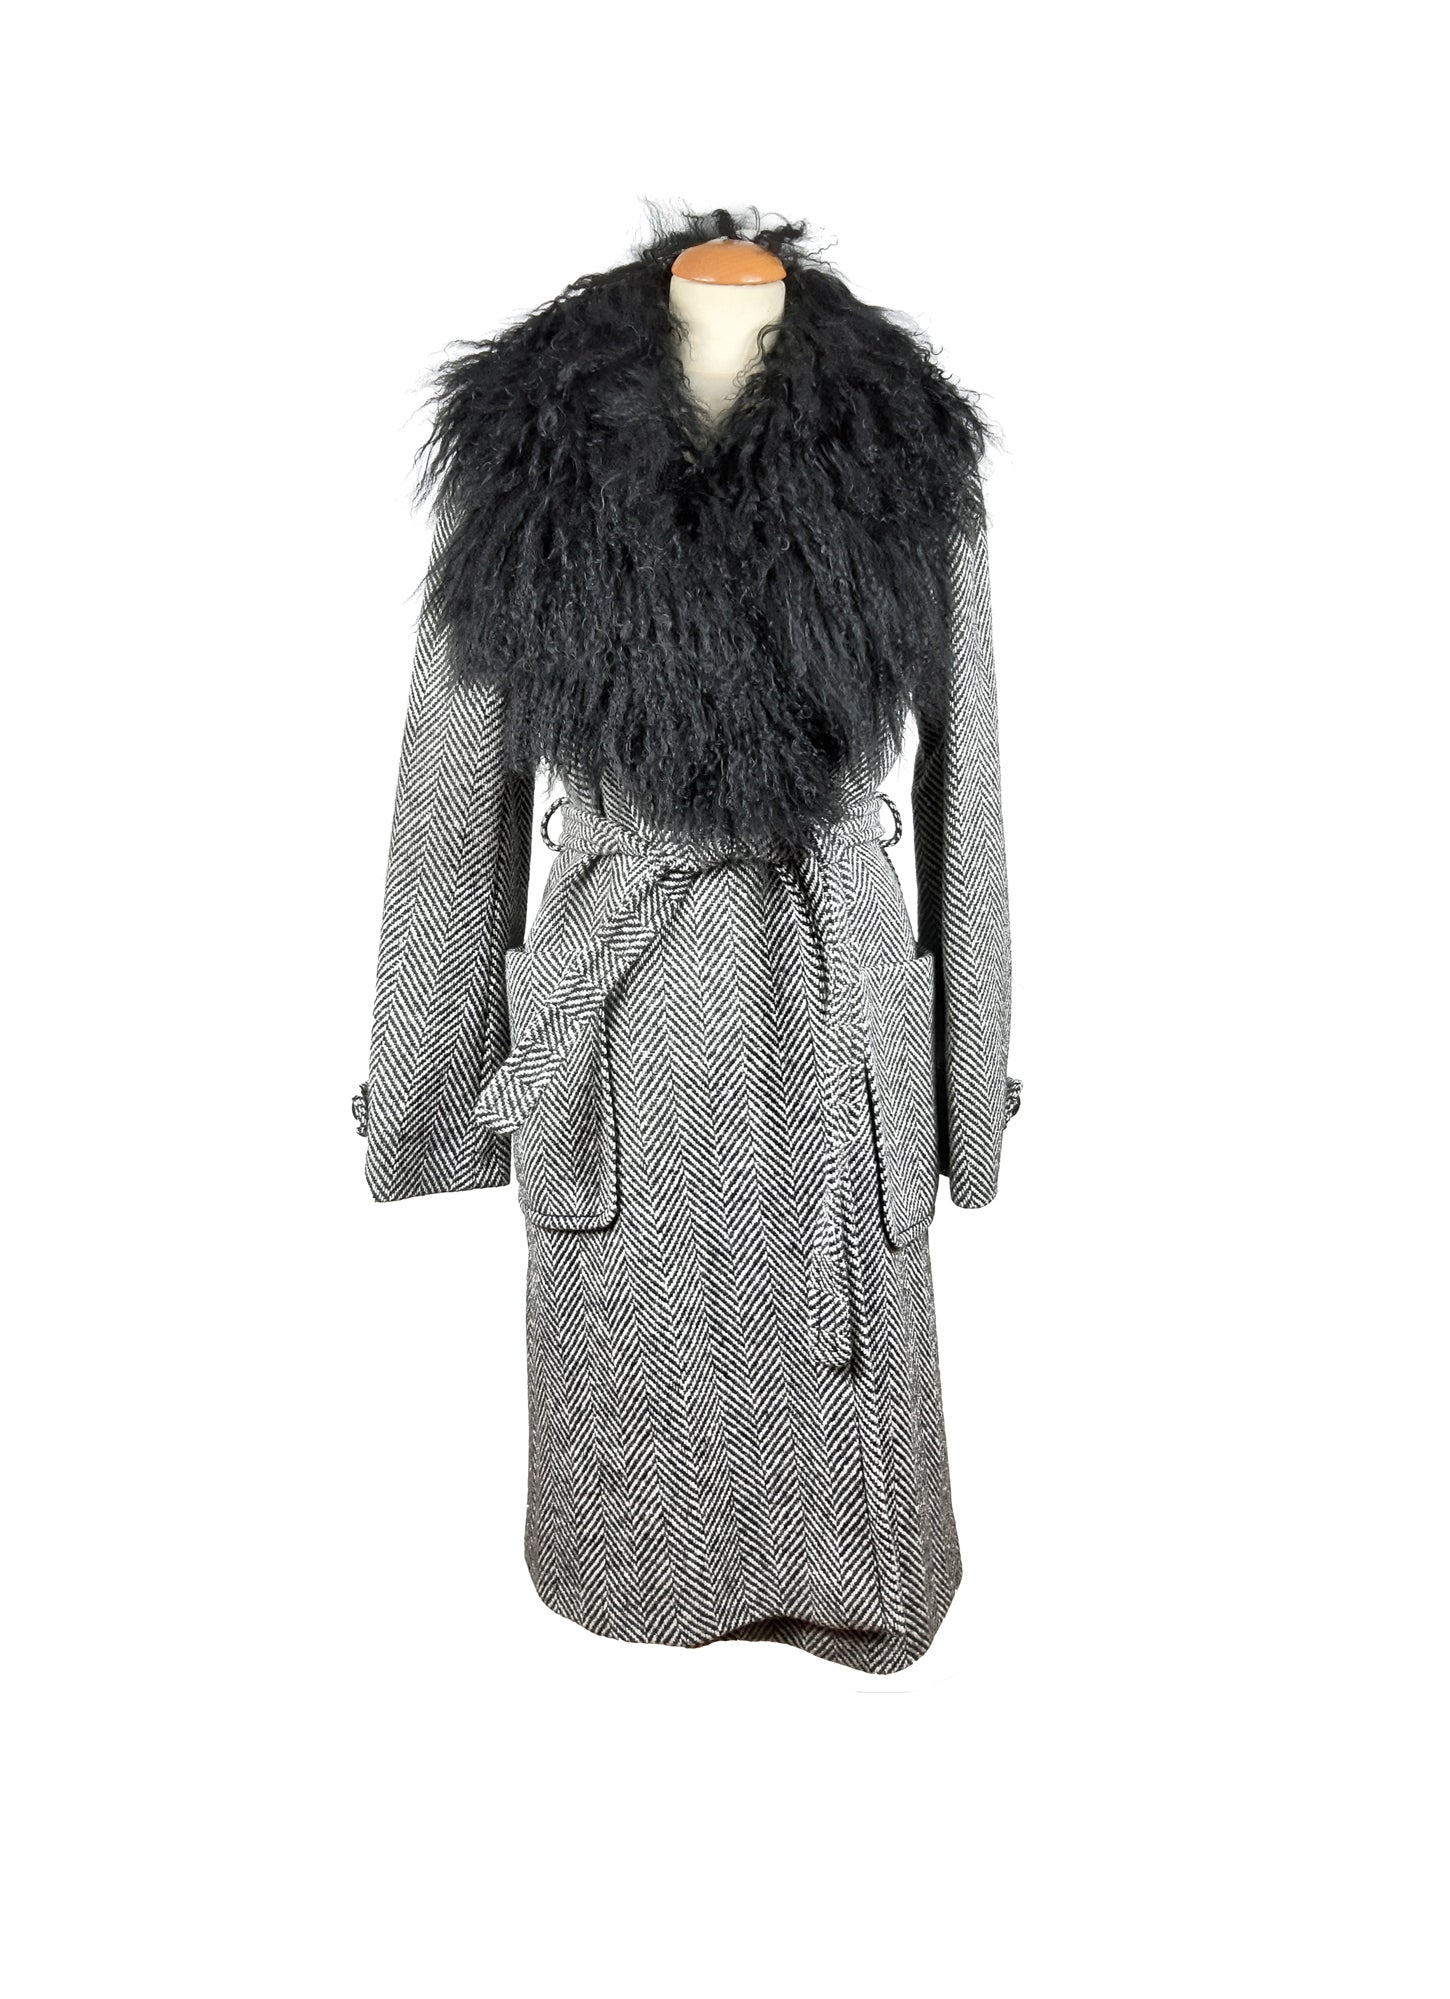 MAX&CO POP Couture Black/Grey Herringbone Wool Coat with Mongolic Goat Fur Collar Size 38 (EU)